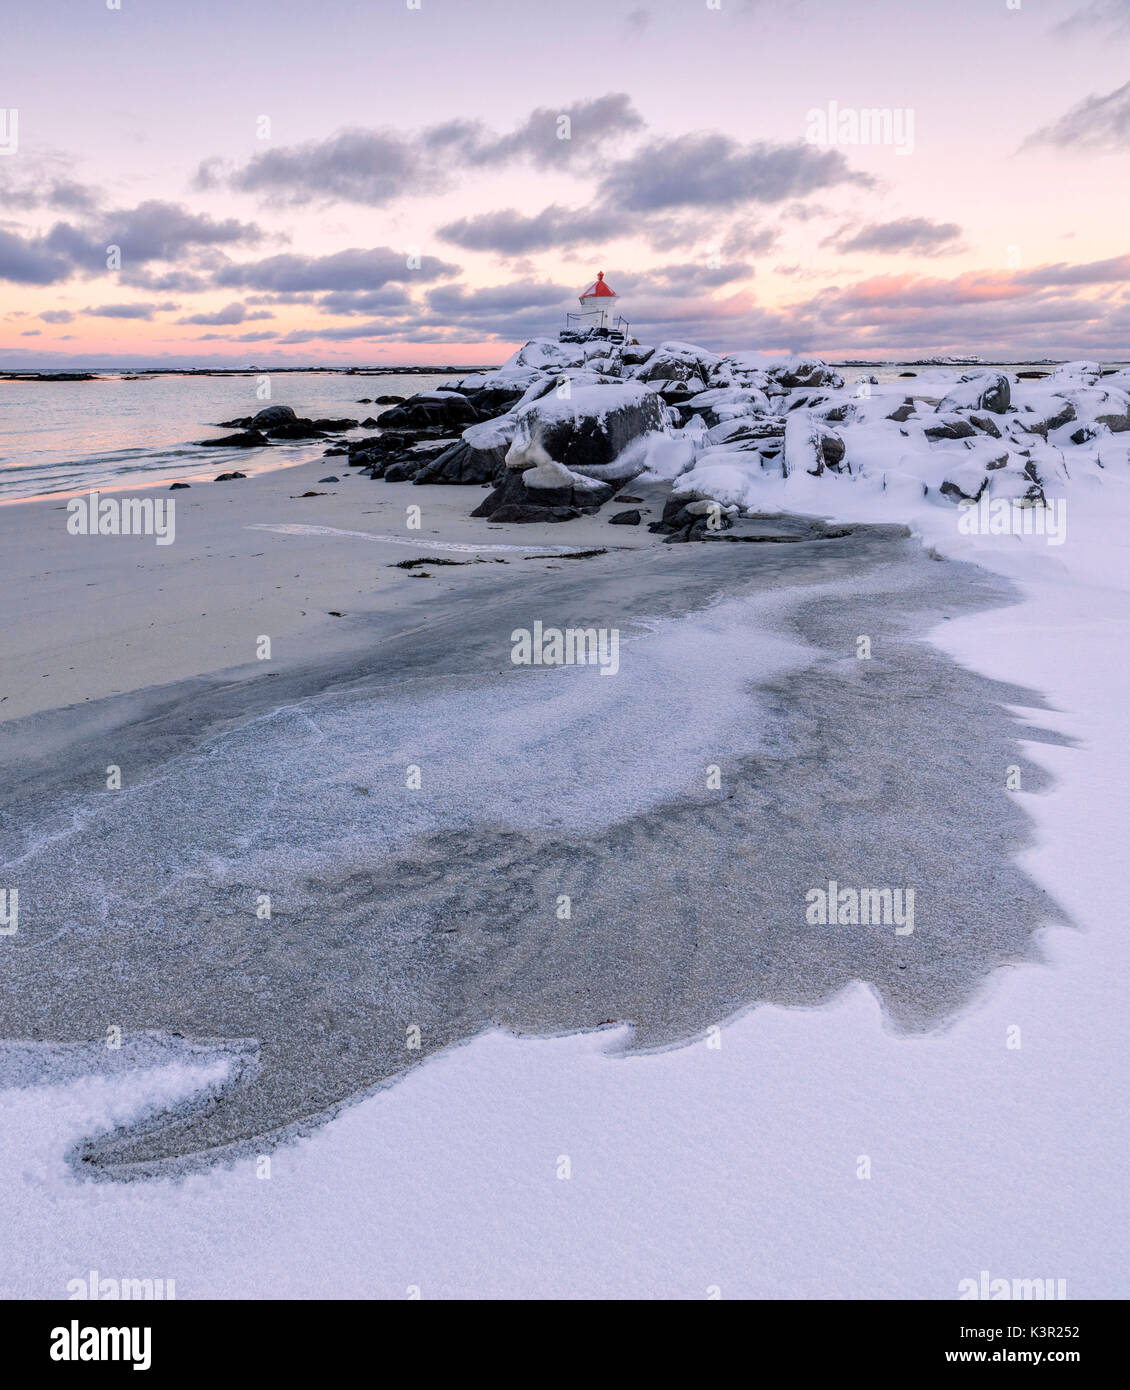 Colorful arctic sunset on the lighthouse surrounded by ice and snow Eggum Vestvagoy Island Lofoten Islands Norway Europe - Stock Image